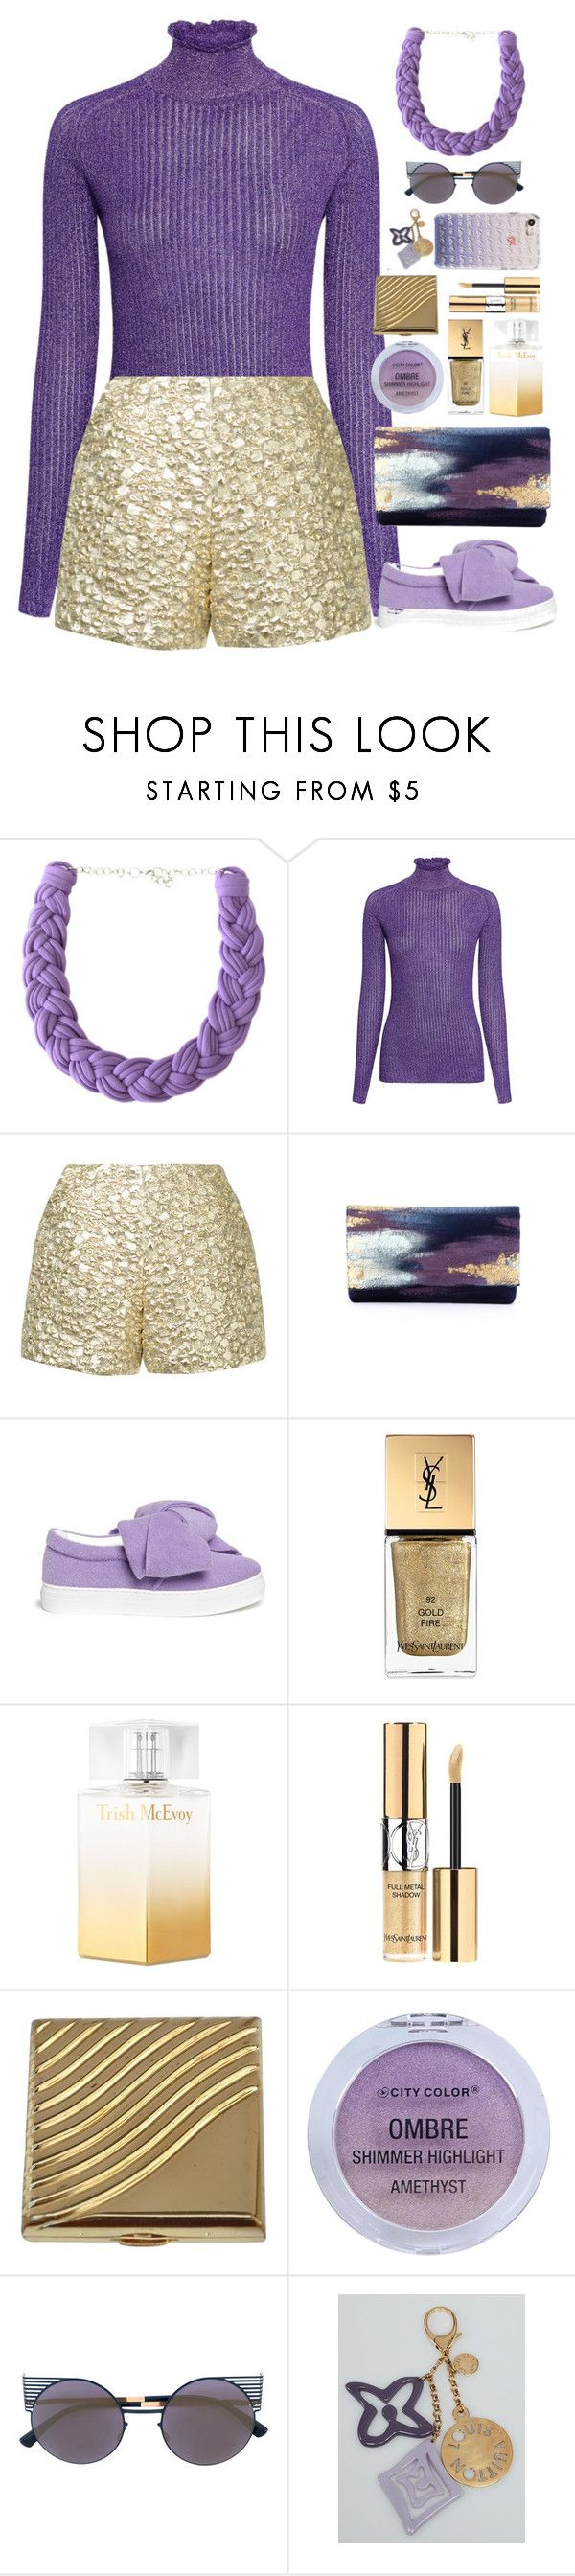 """""""Purple and Gold"""" by gicreazioni ❤ liked on Polyvore featuring Carven, Bambah, Joshua's, Yves Saint Laurent, Trish McEvoy, Estée Lauder, City Color, Mykita, Louis Vuitton and Rebecca Minkoff"""